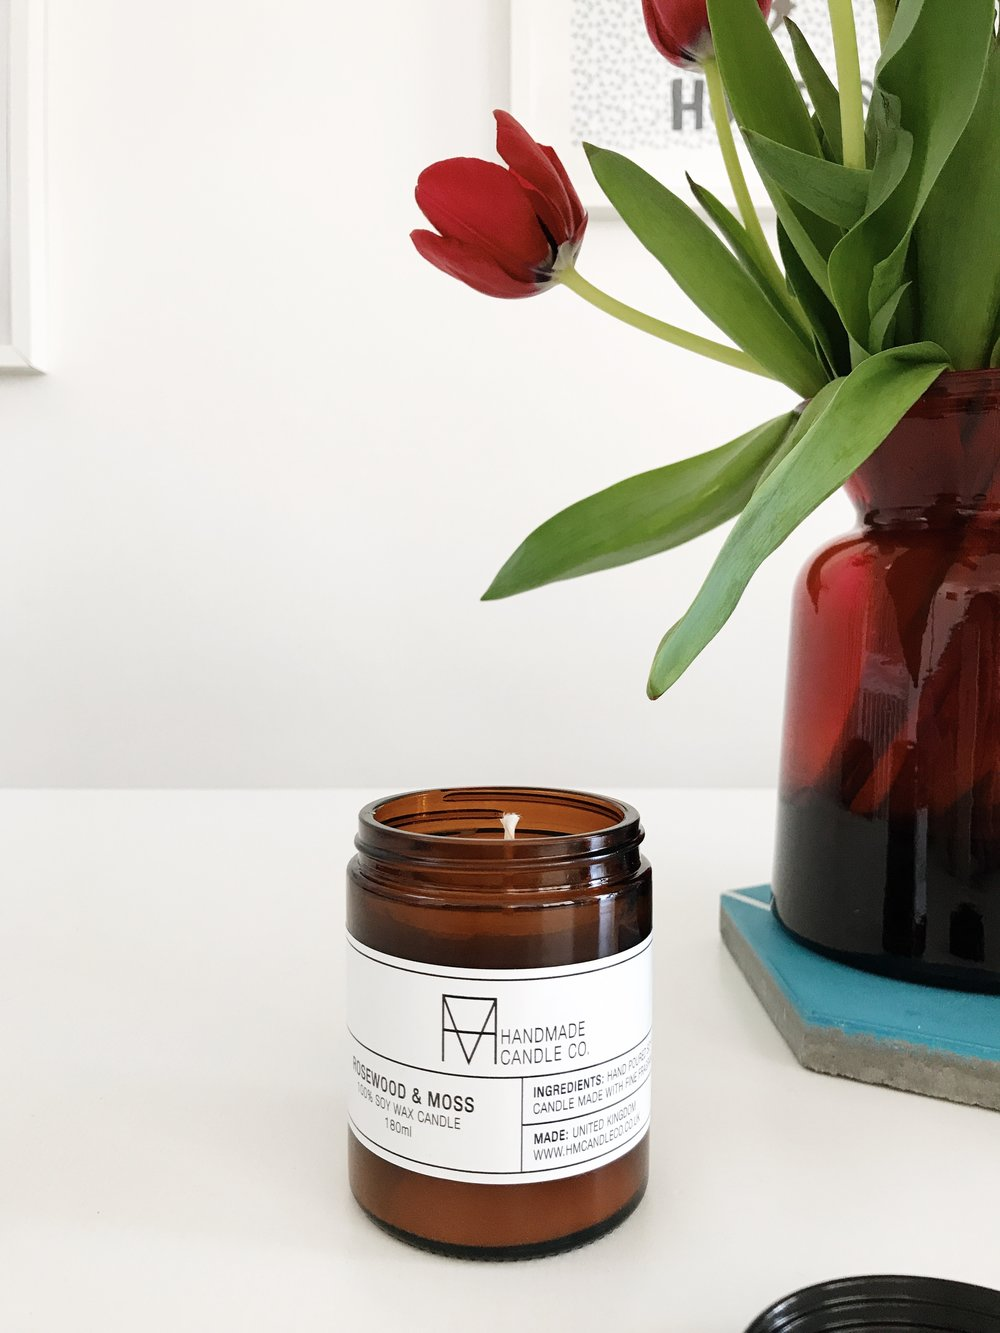 mother's day gifts | mother's day presents | natural soy wax candle | candle jar | mother's day small gift | natural candle | ourstorytime.co.uk